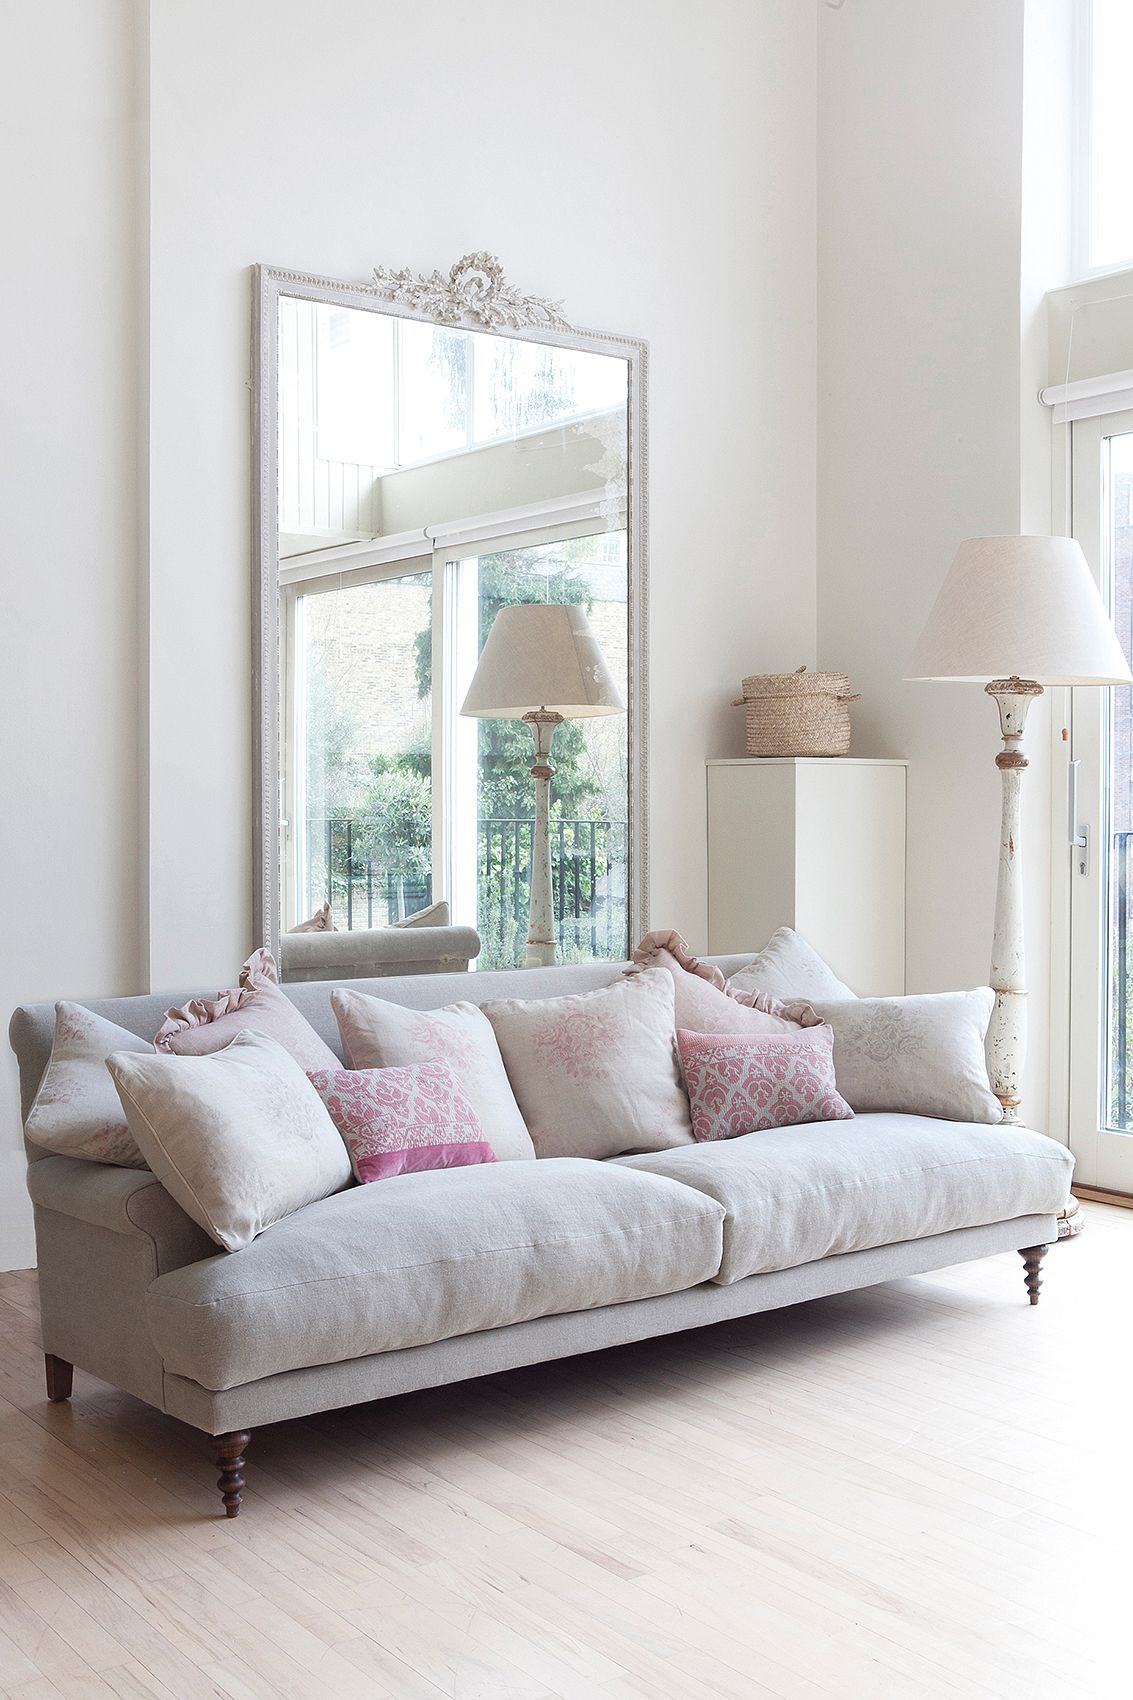 35 Sensational Sofa s You might love as much as your spouse